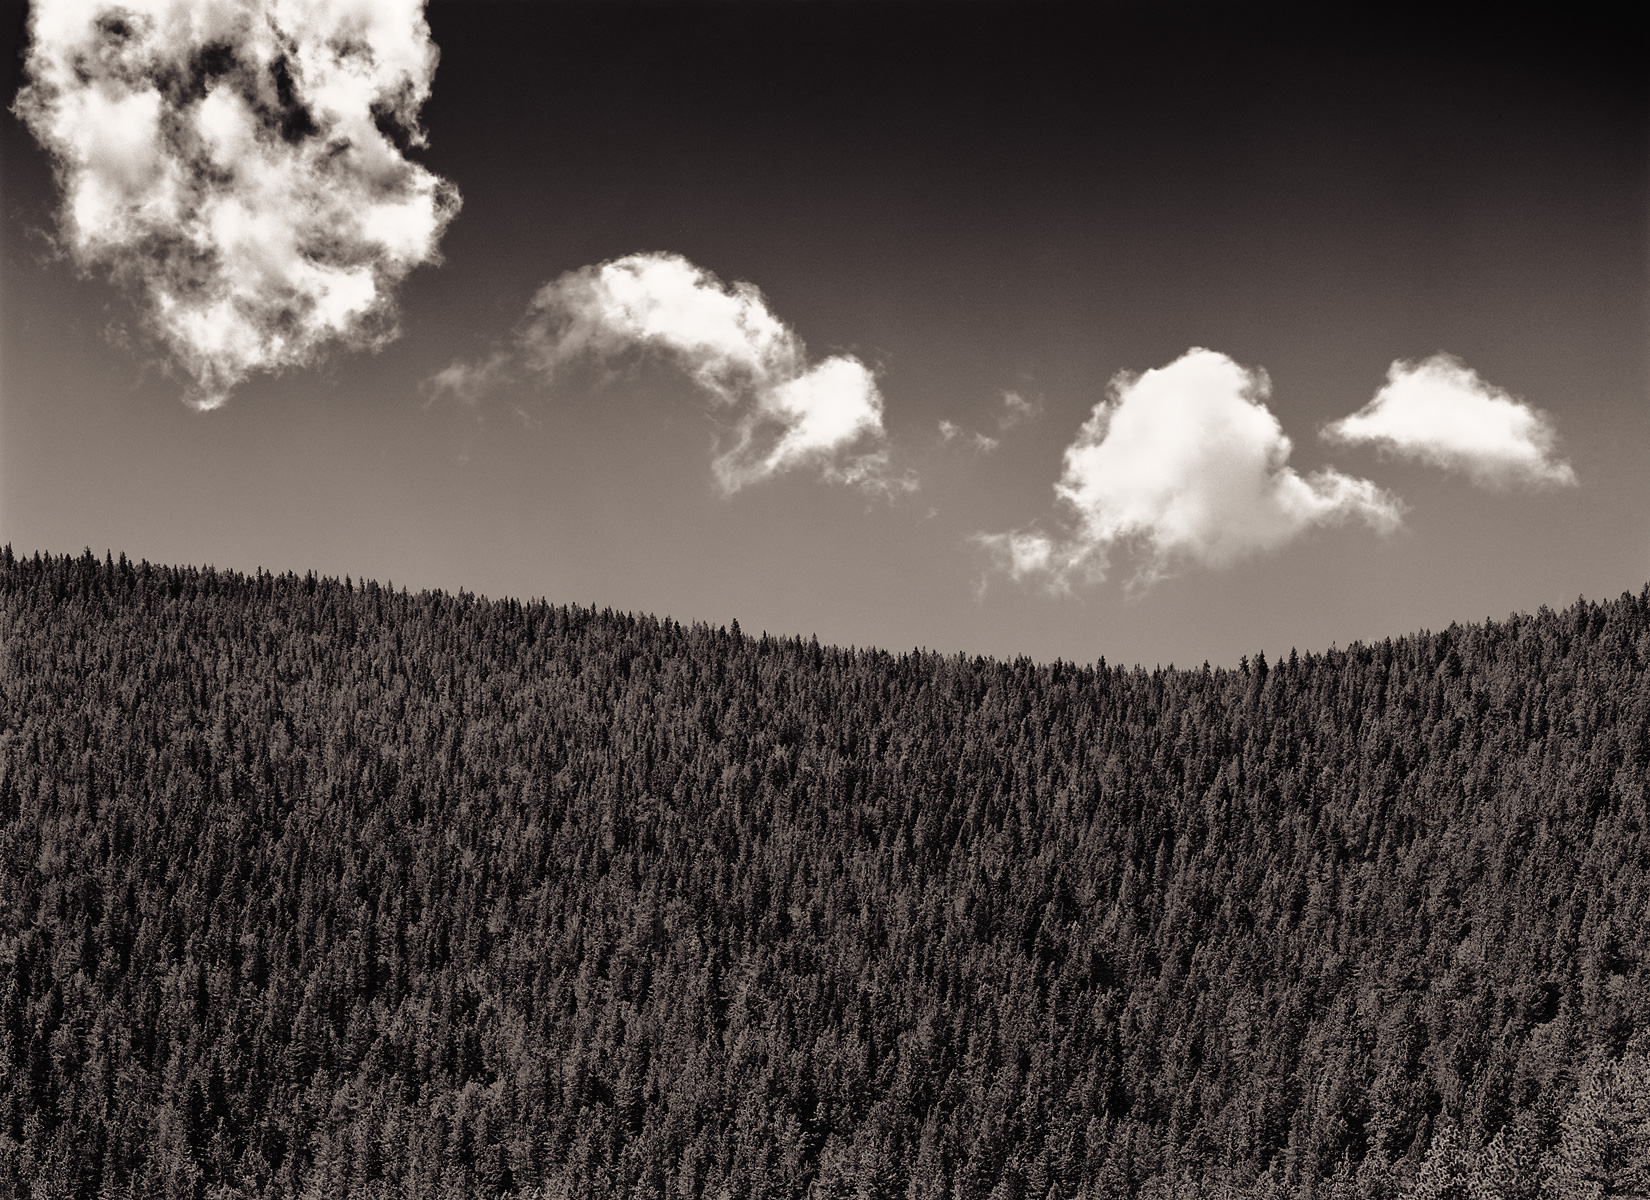 clouds_over_fir_trees